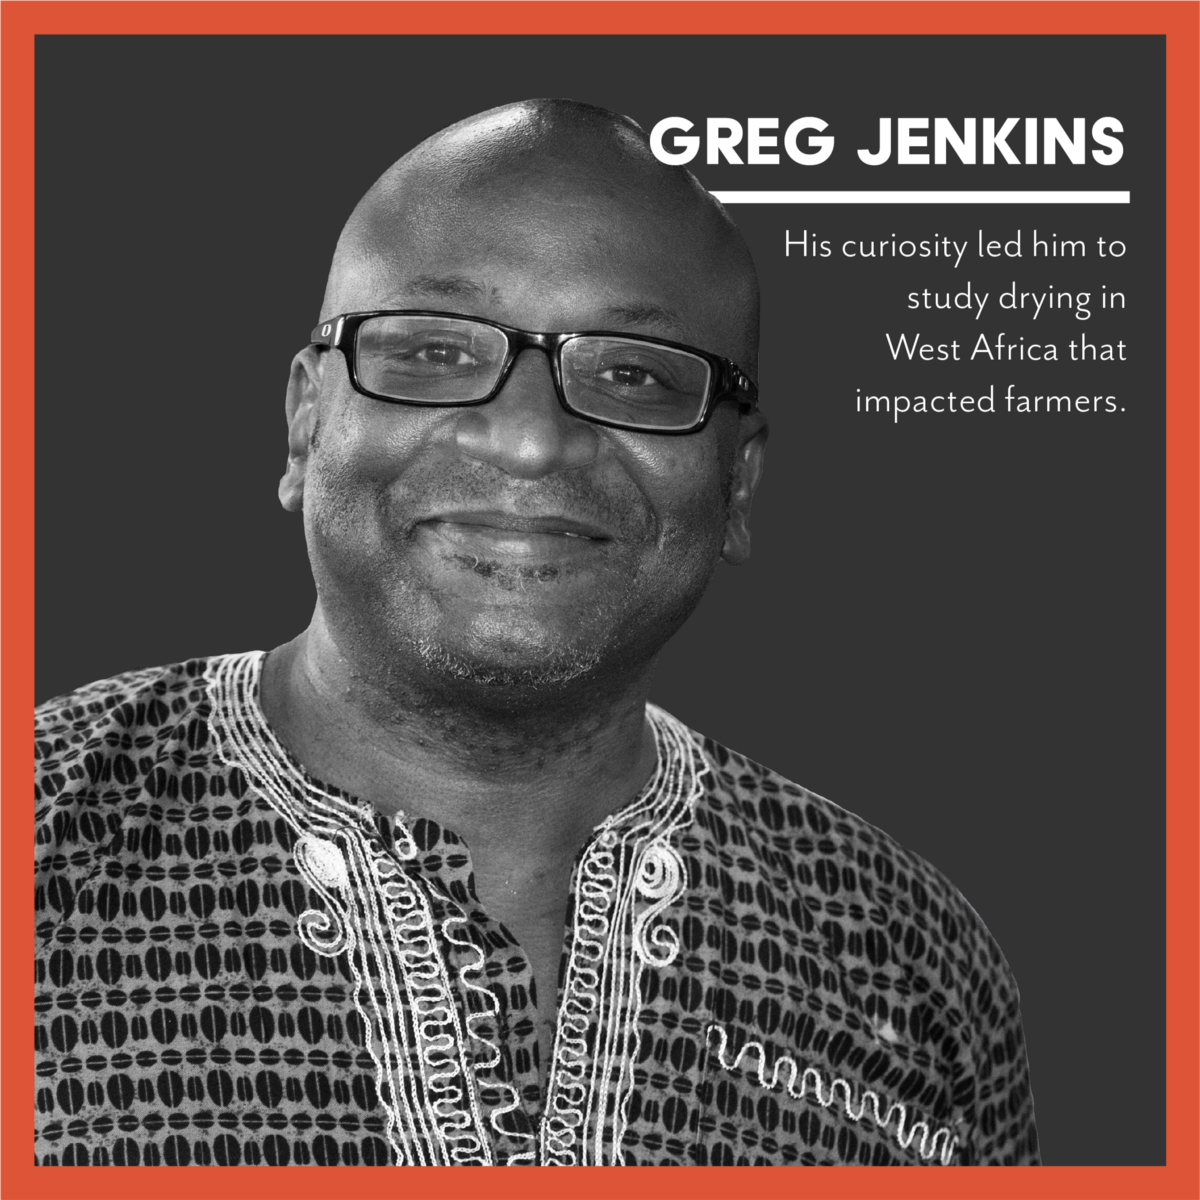 greg jenkins pursues environmental justice through agriculture